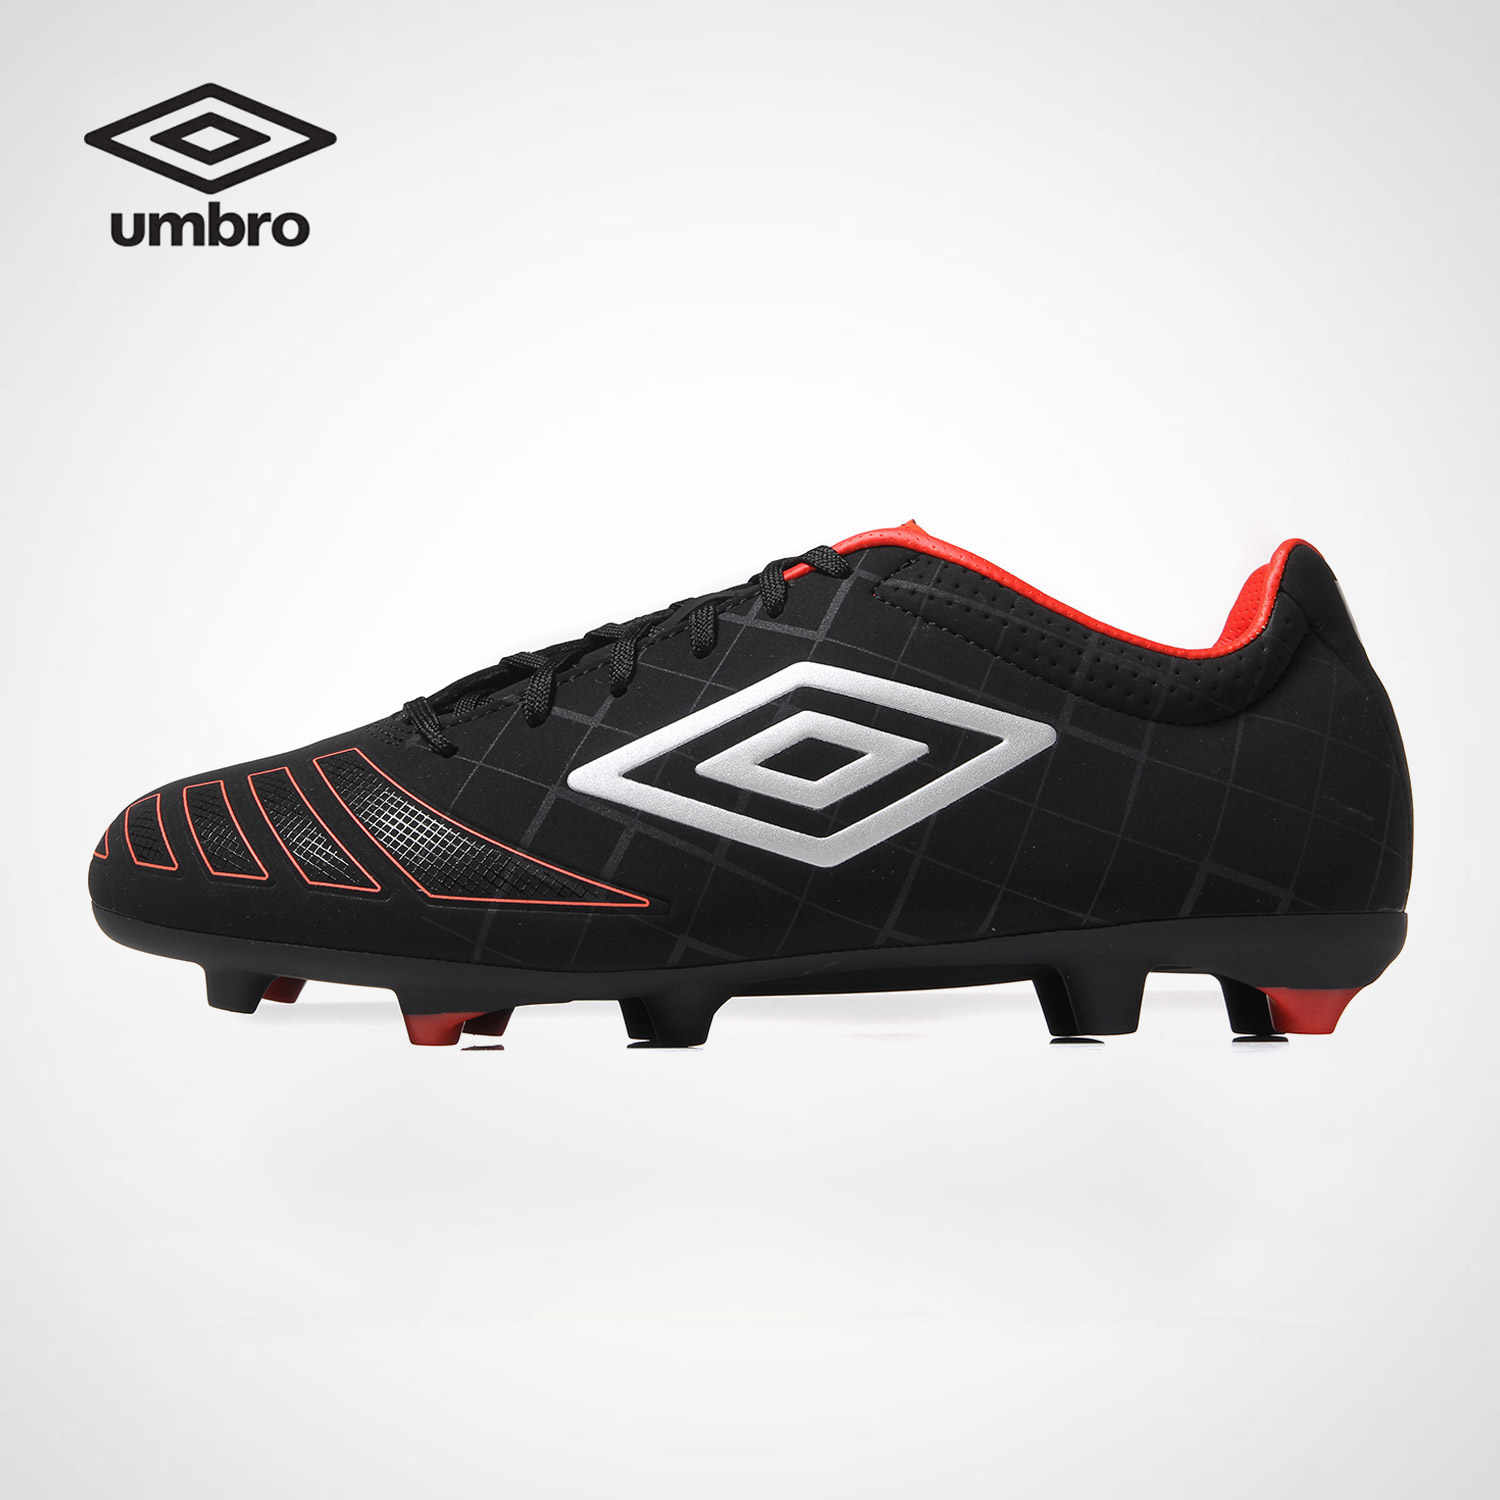 70ee6cae9 Umbro Football Shoes Men UX Series Rubber Soles Anti Slip Adult Students  Professional Training Sneakers Sports